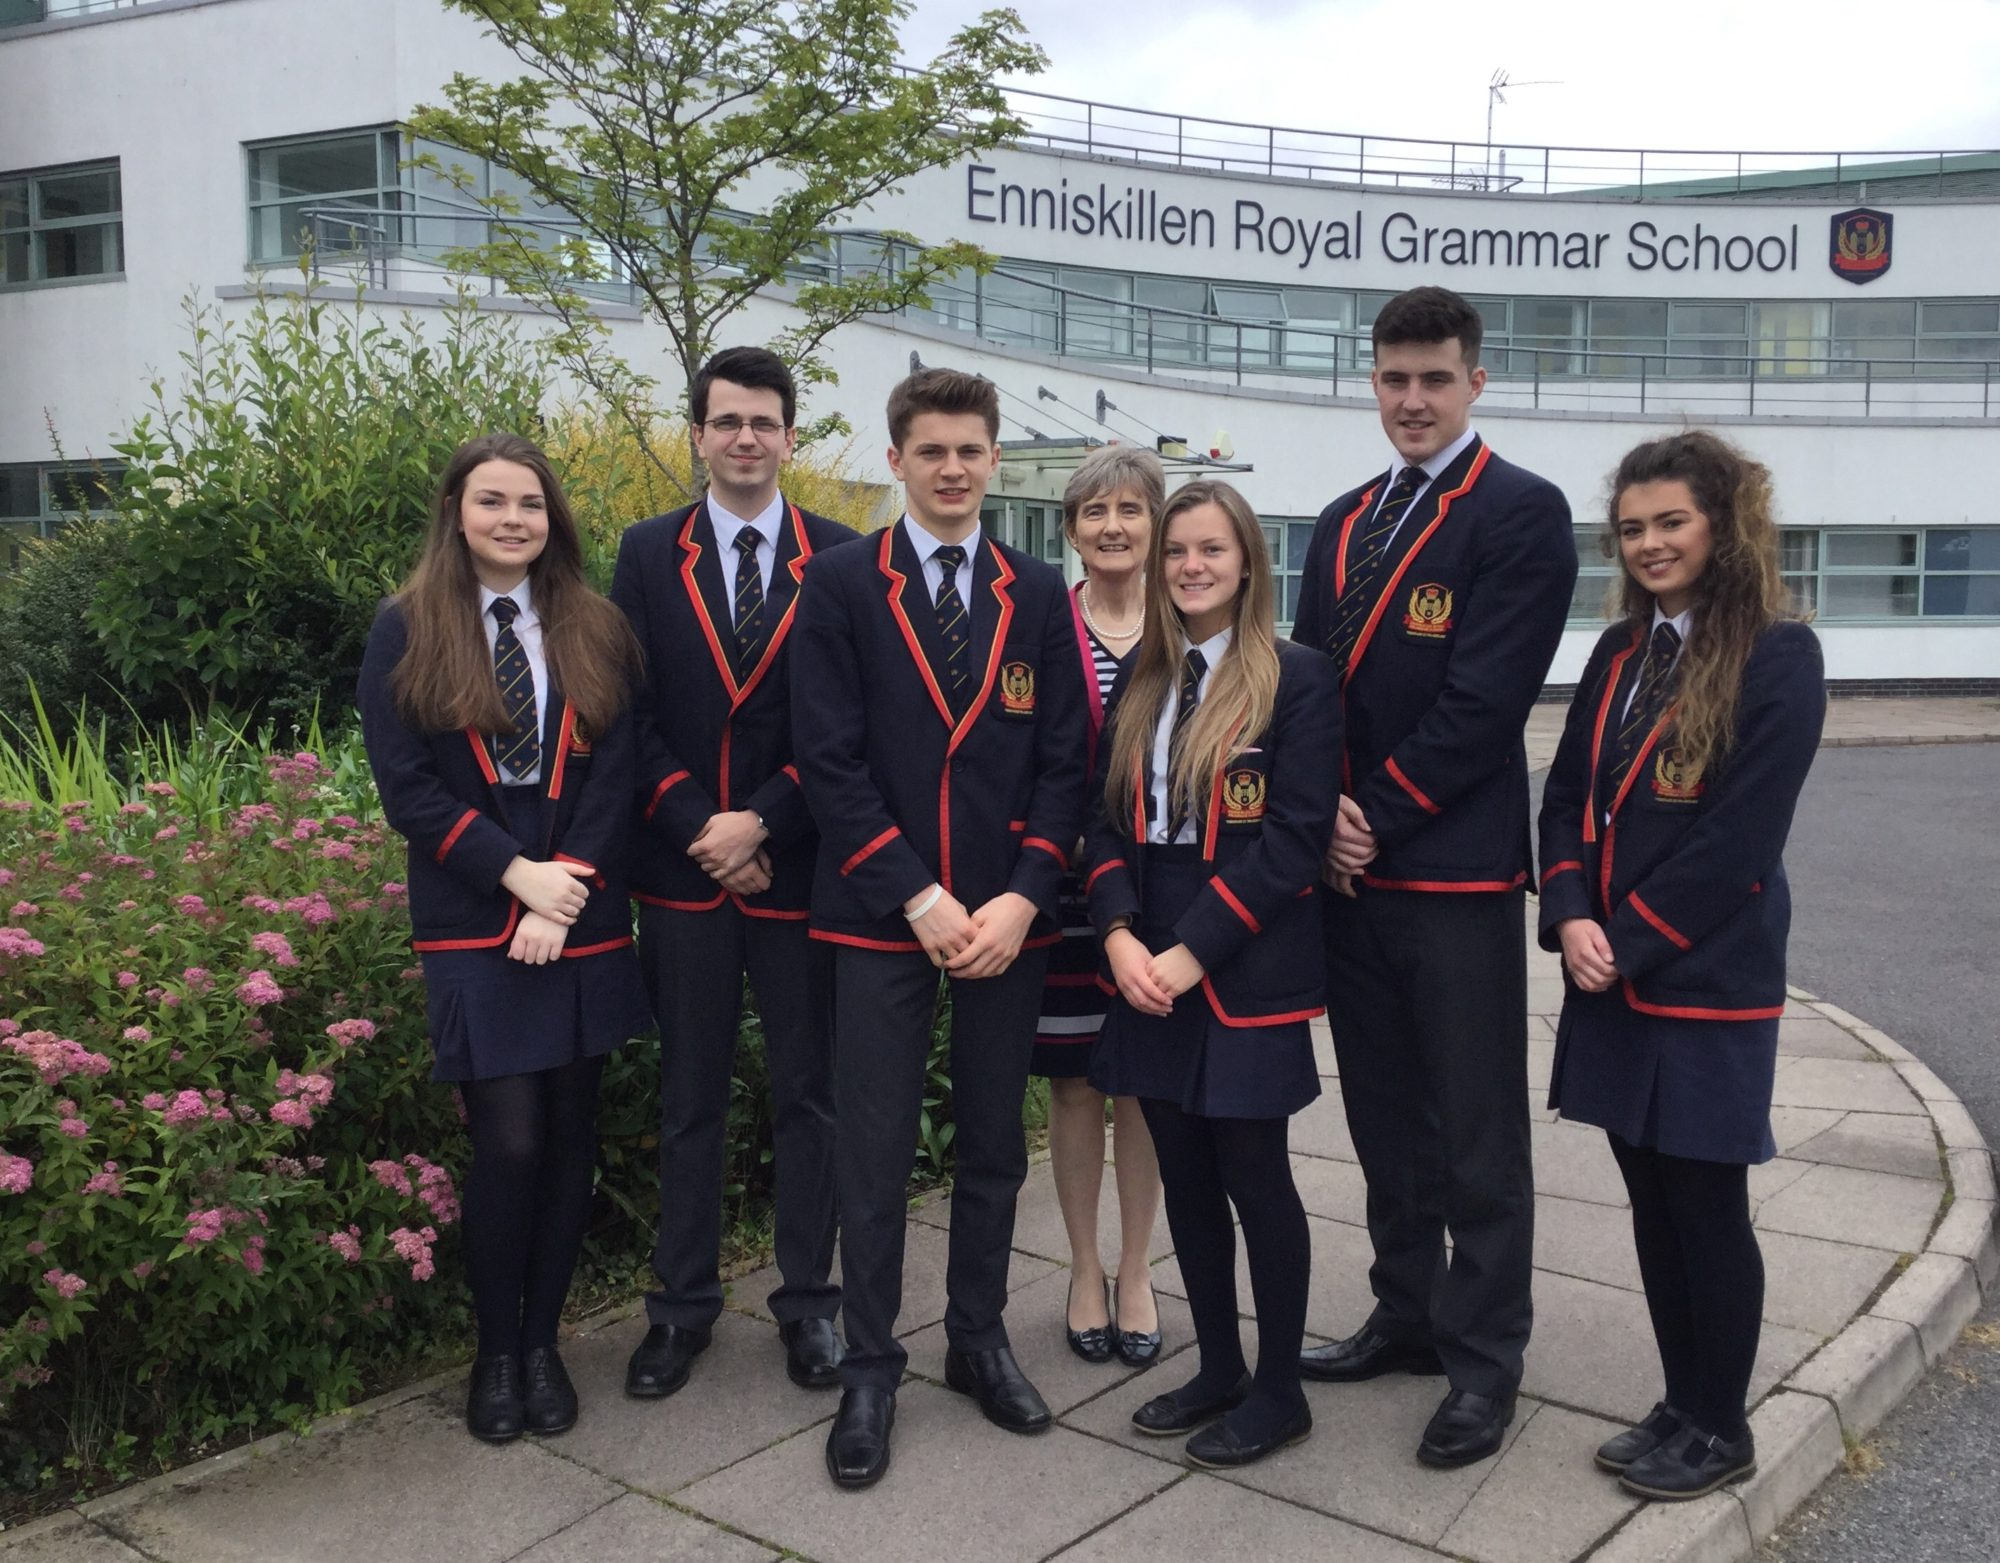 Meet our NEW Senior Pupil Leaders for 2017-18 ...